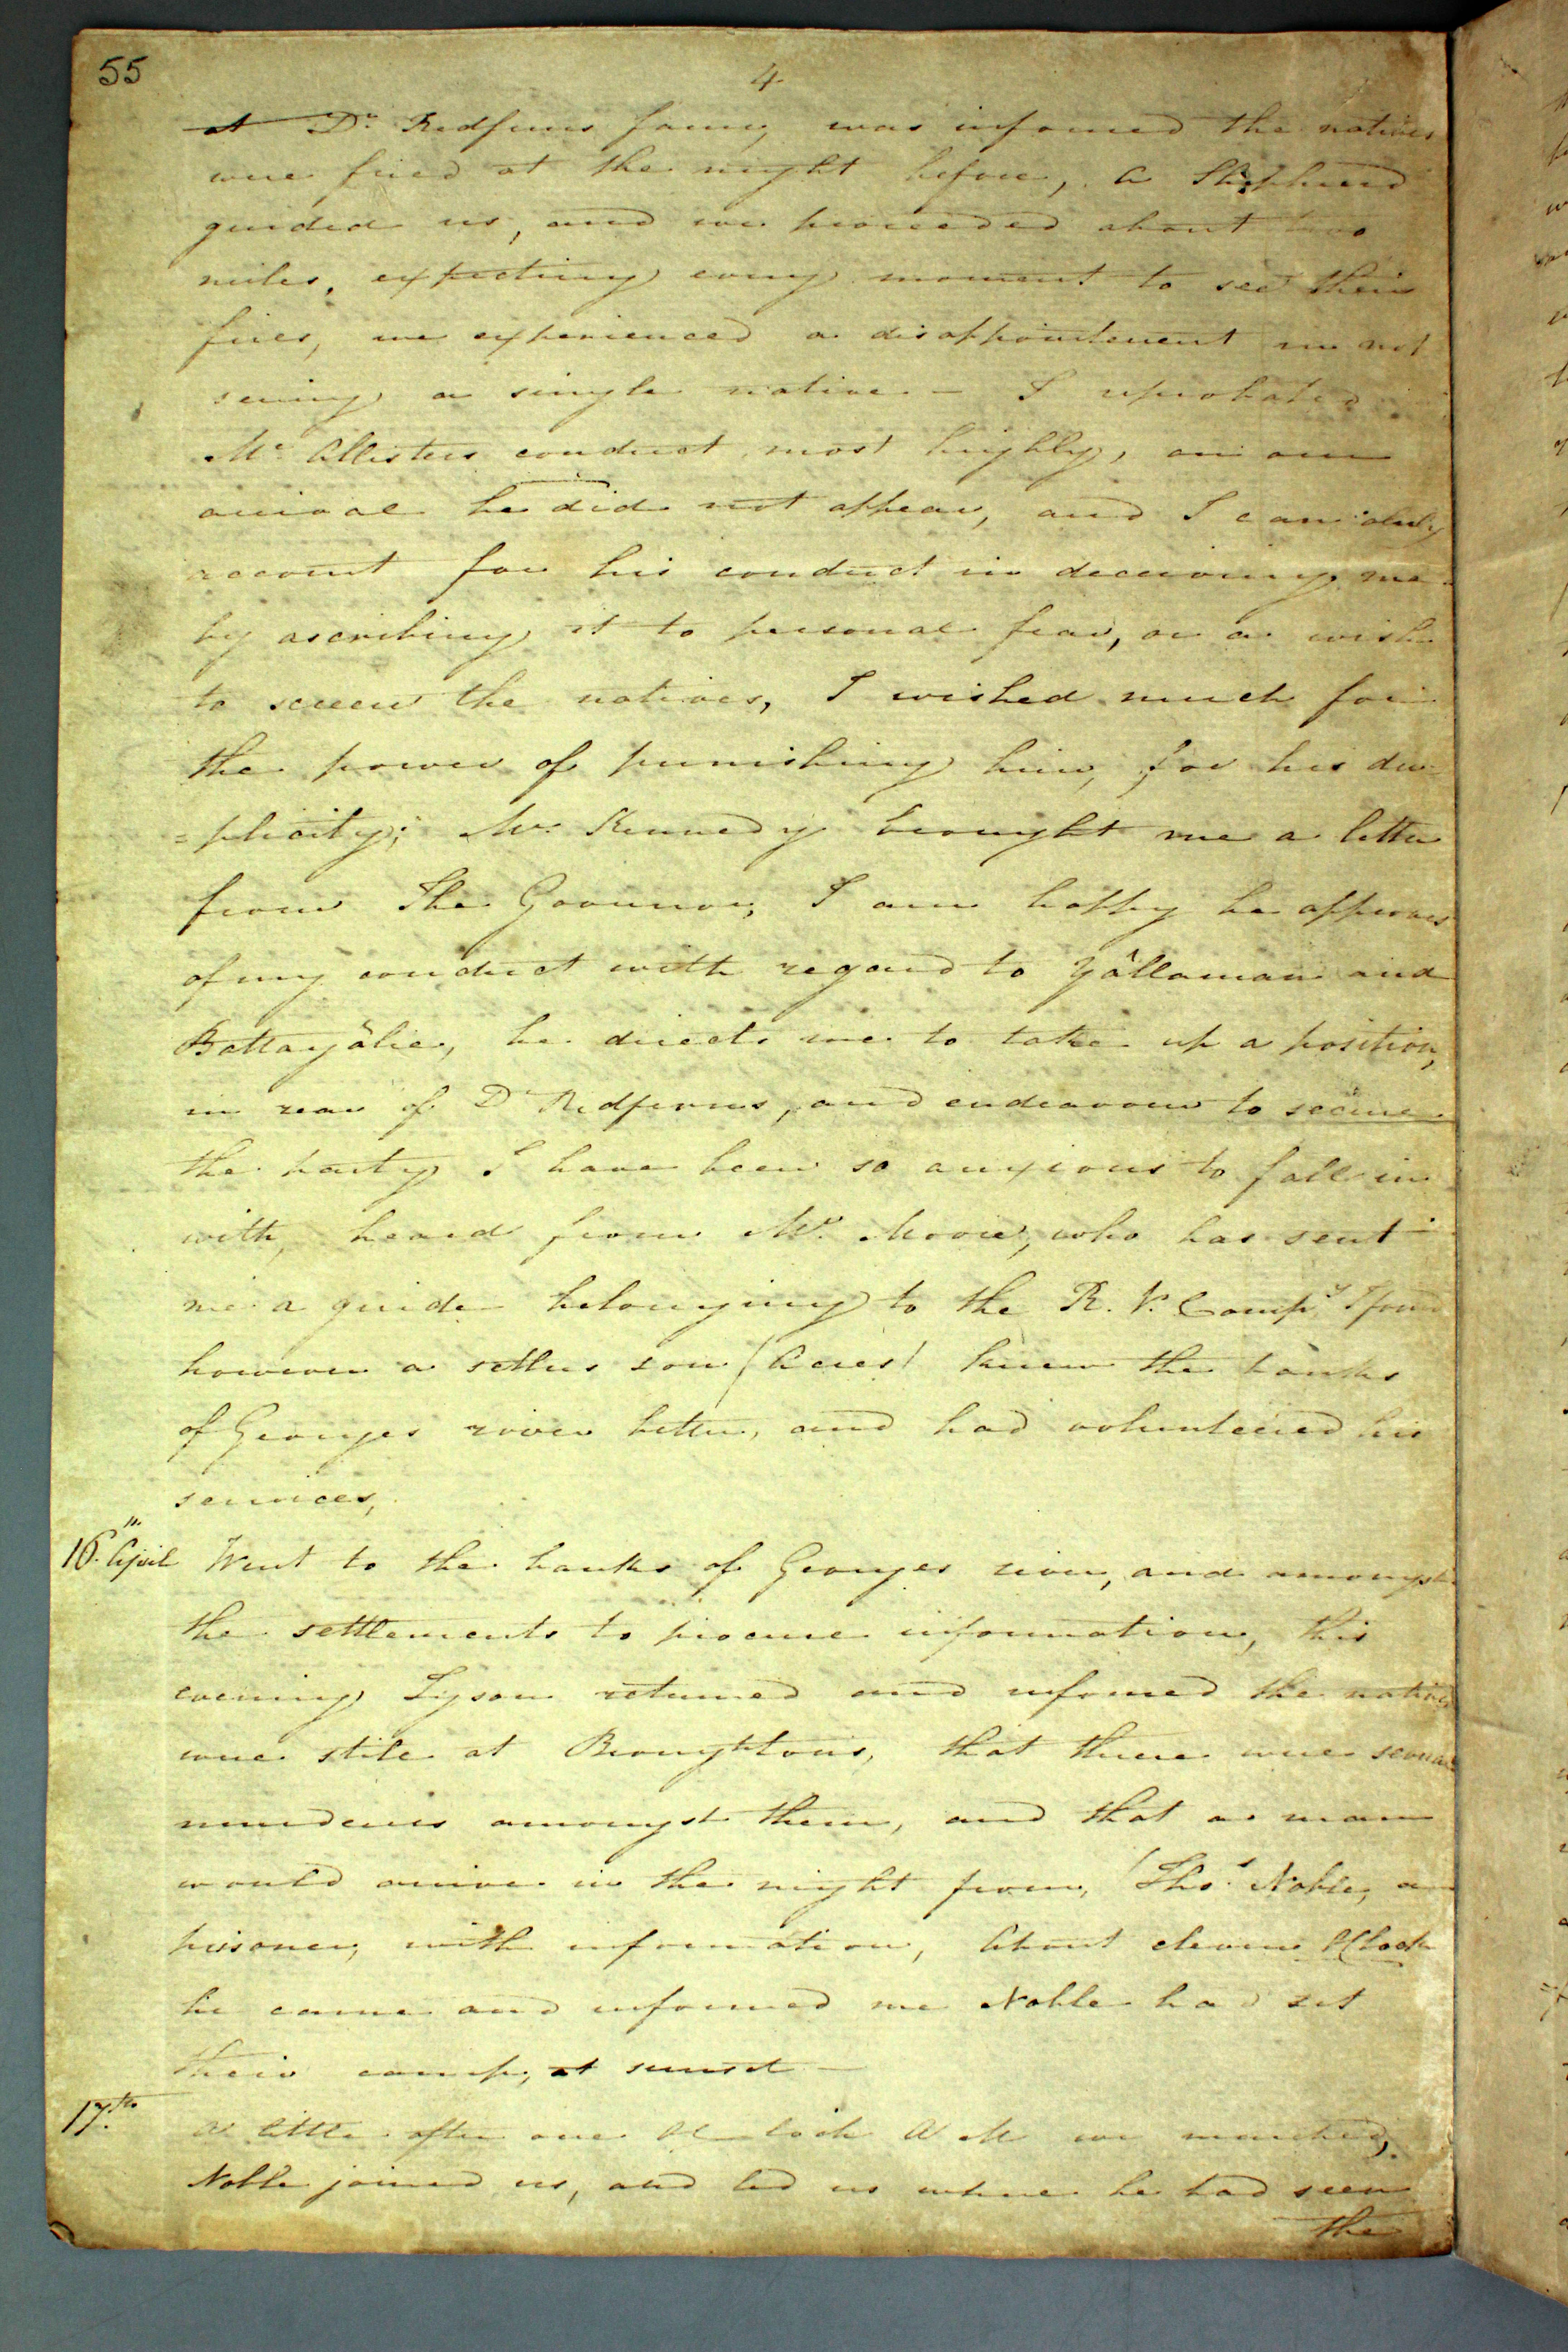 Colonial Secretary's papers - Diary of James Wallis relating to the Appin Massacre, 17 April 1816. NRS 897 4-1735 p55